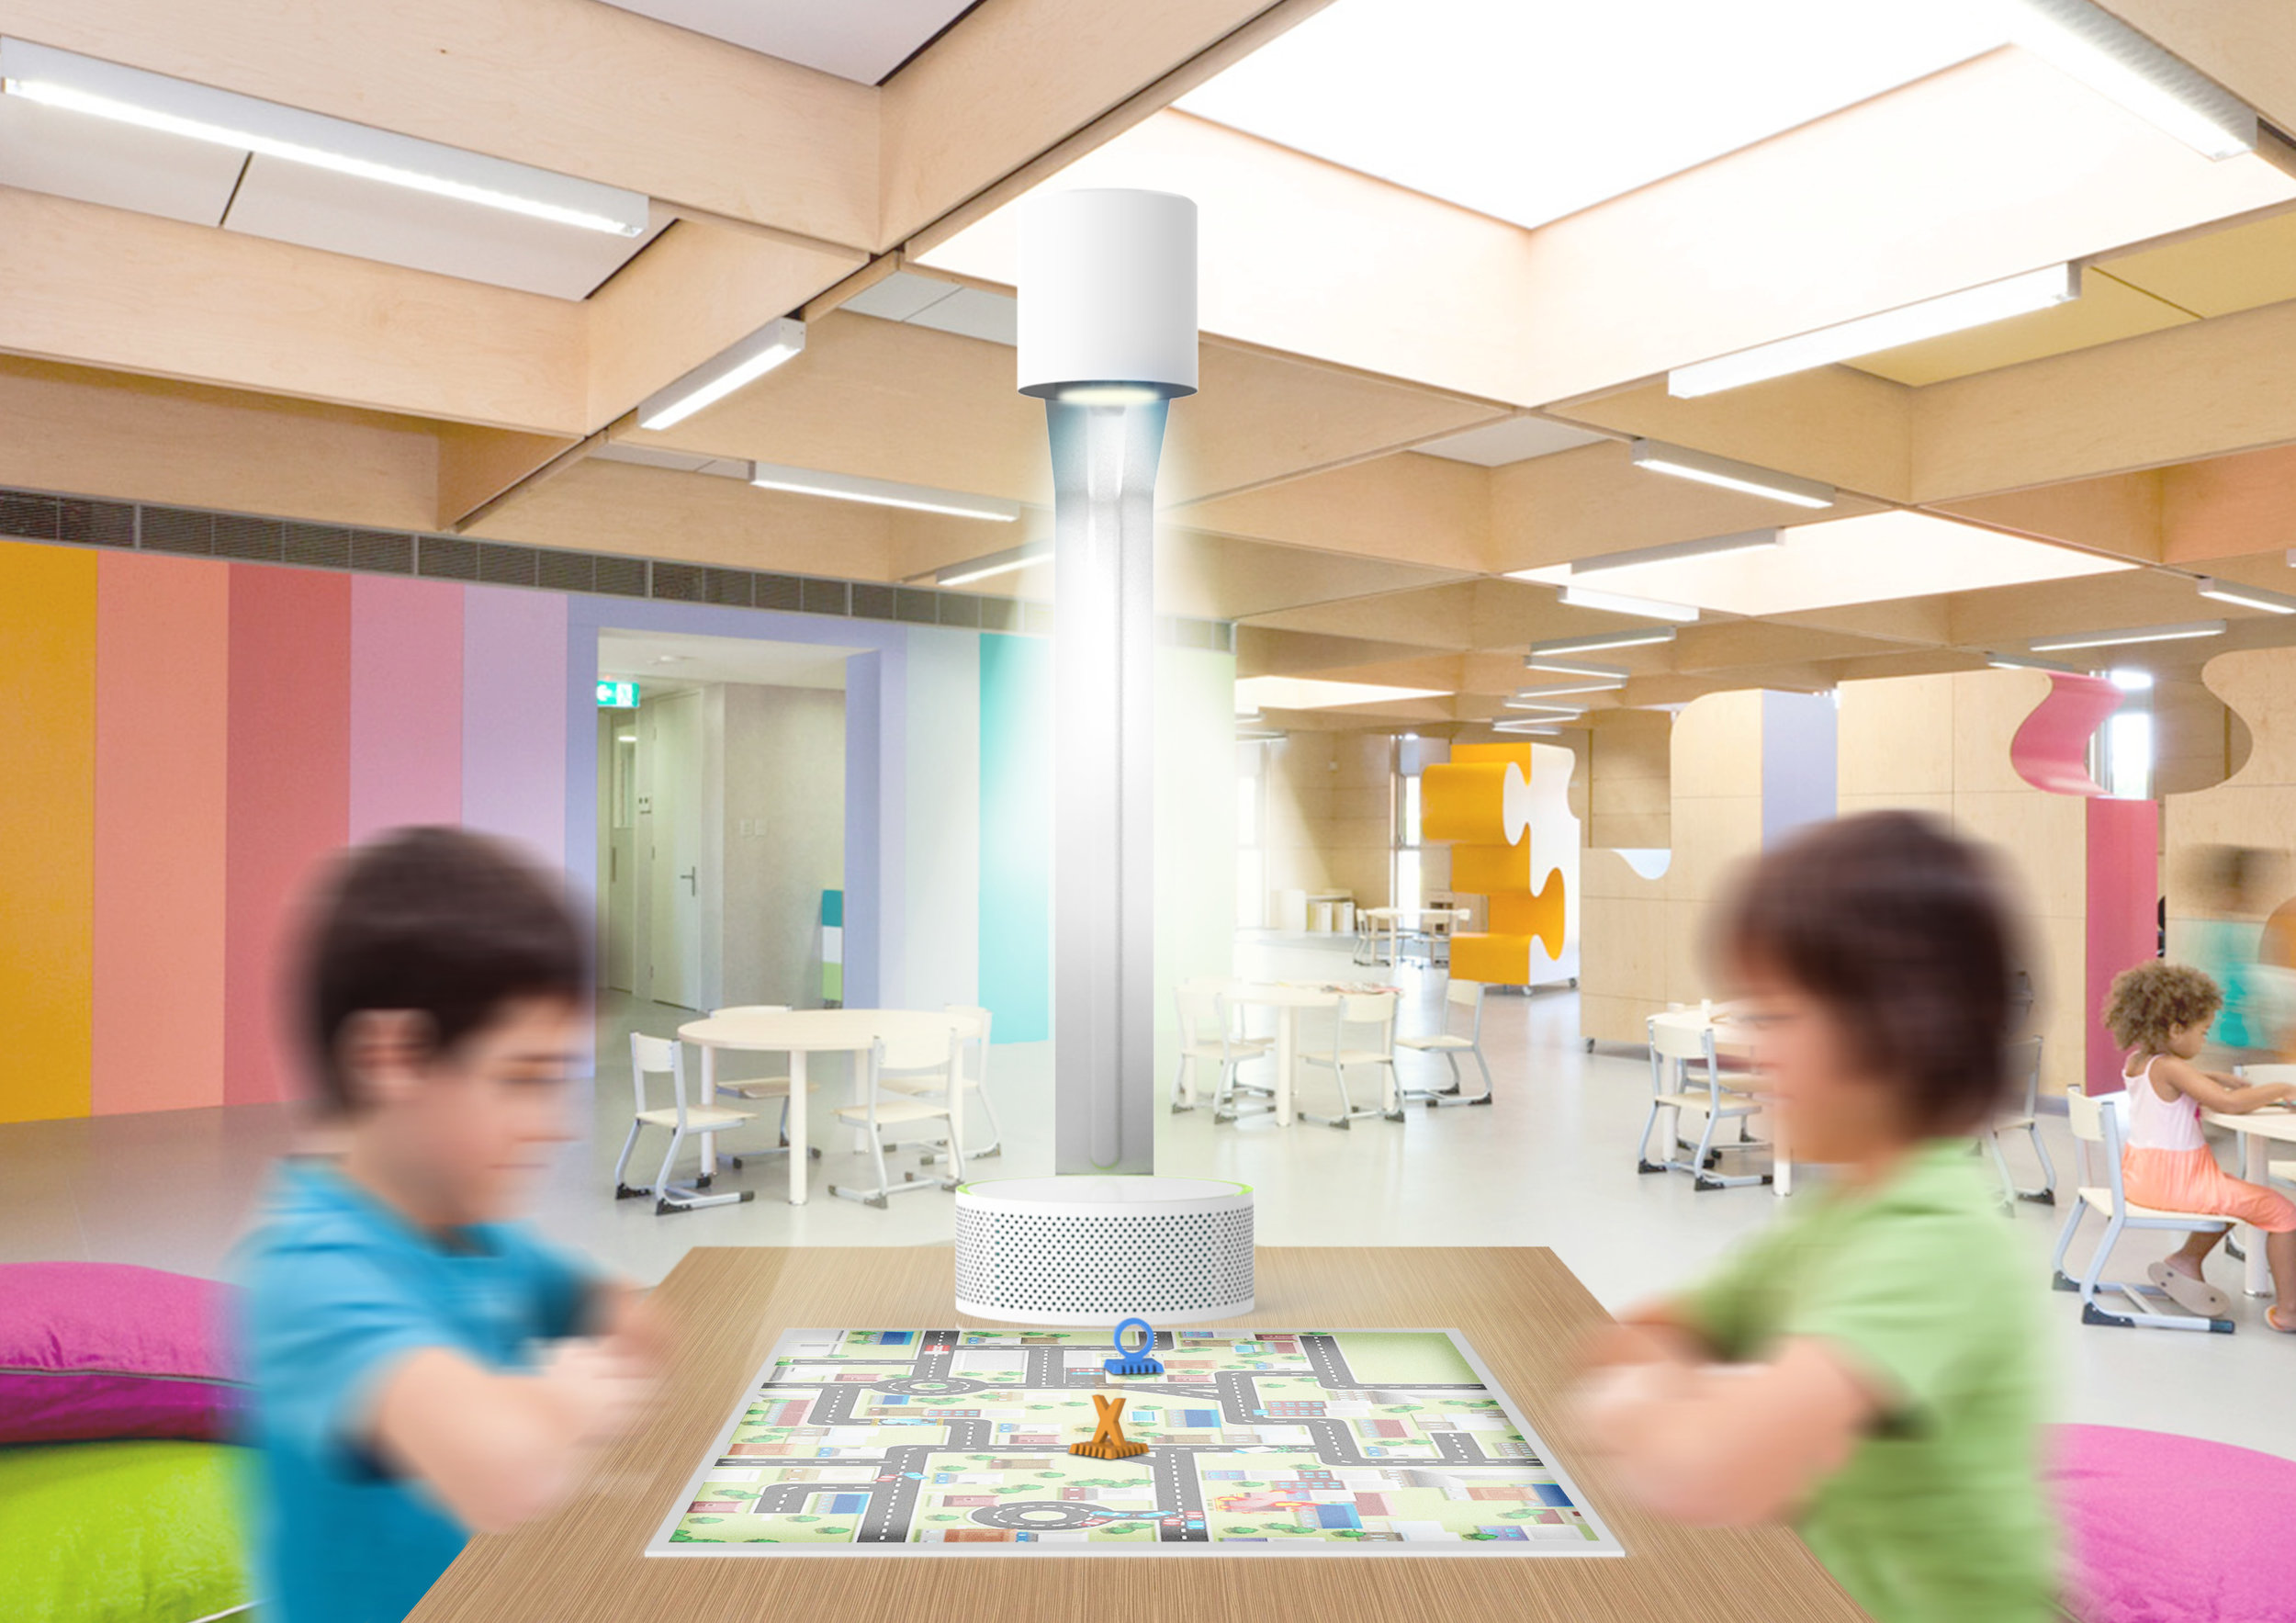 Luqo interactive projections for children's education. Industrial Design